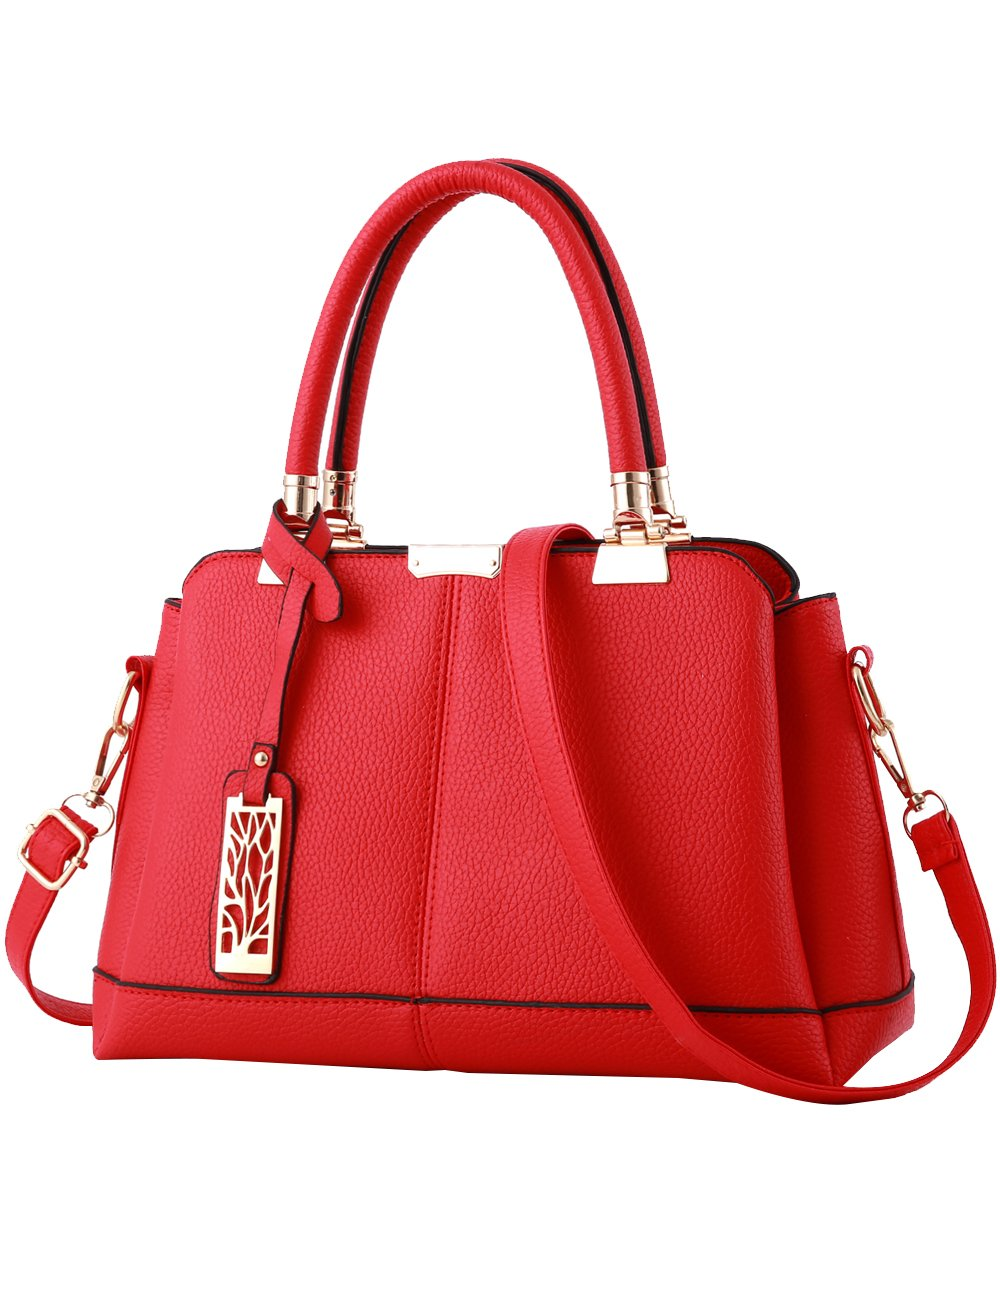 Womens PU Cross-body Hand Handle Bags Shoulder Bags Red by CUKKE (Image #1)